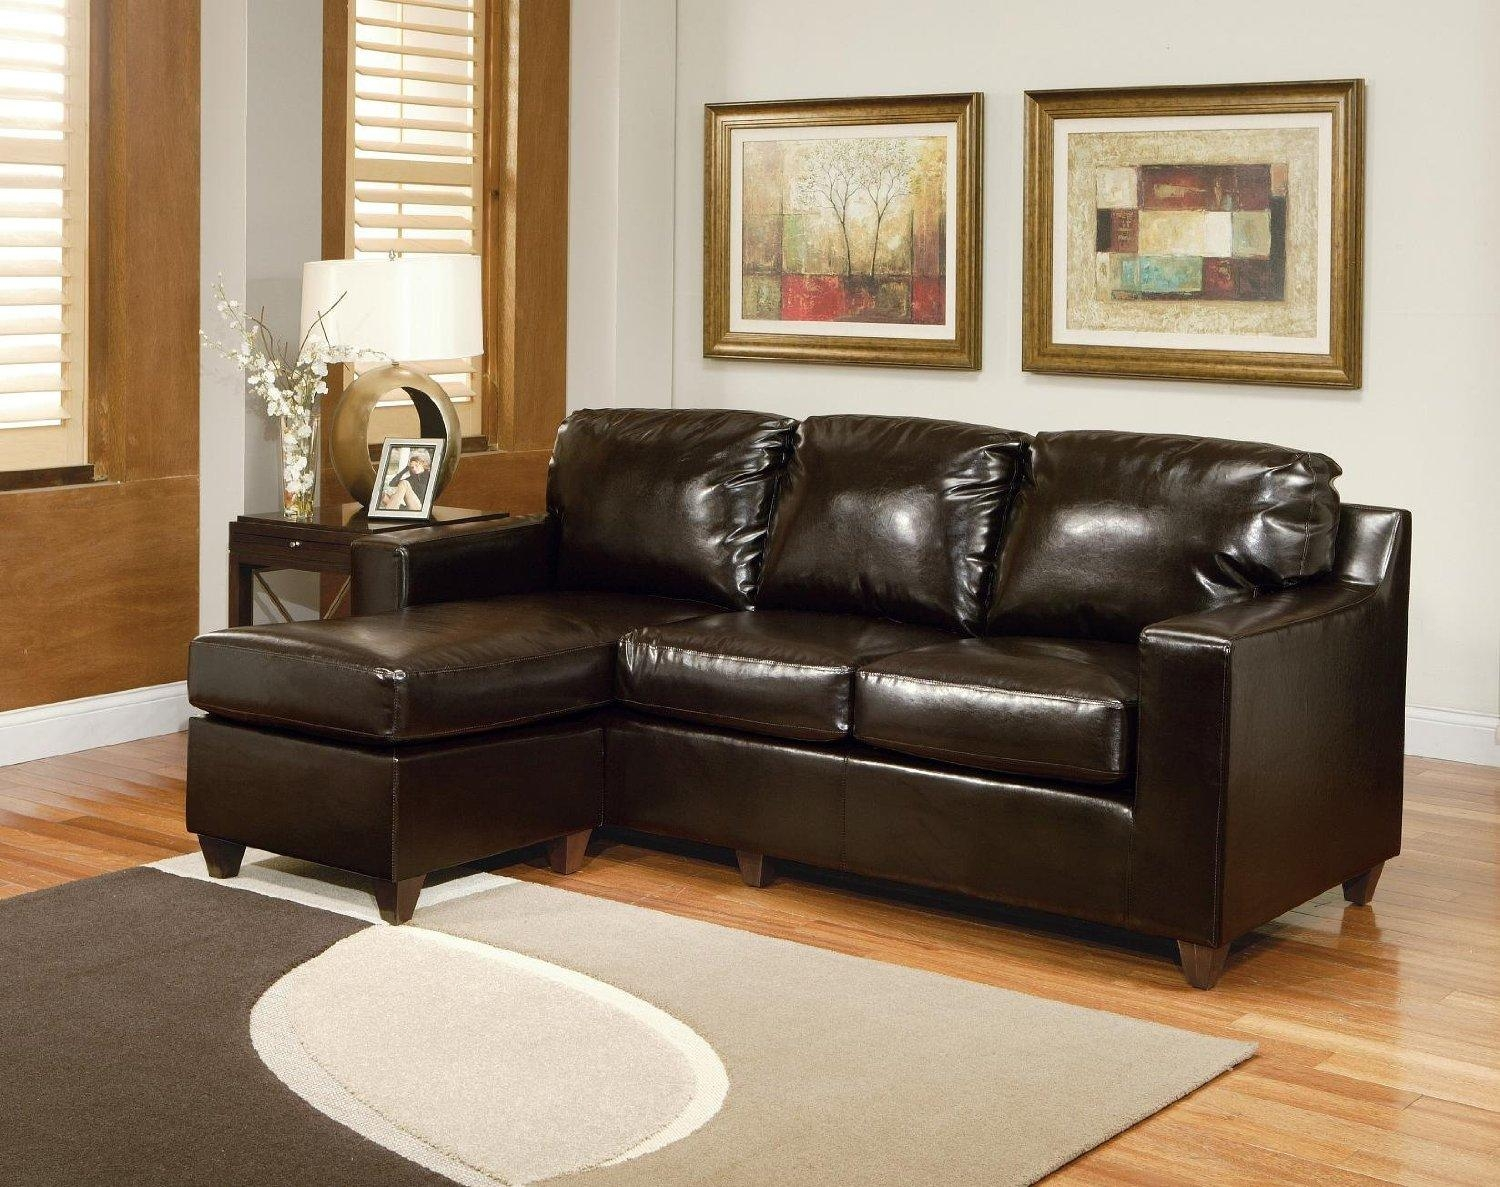 Small Black Sectional Sofa | Sofa Gallery | Kengire With Regard To Small Black Sofas (Image 17 of 20)